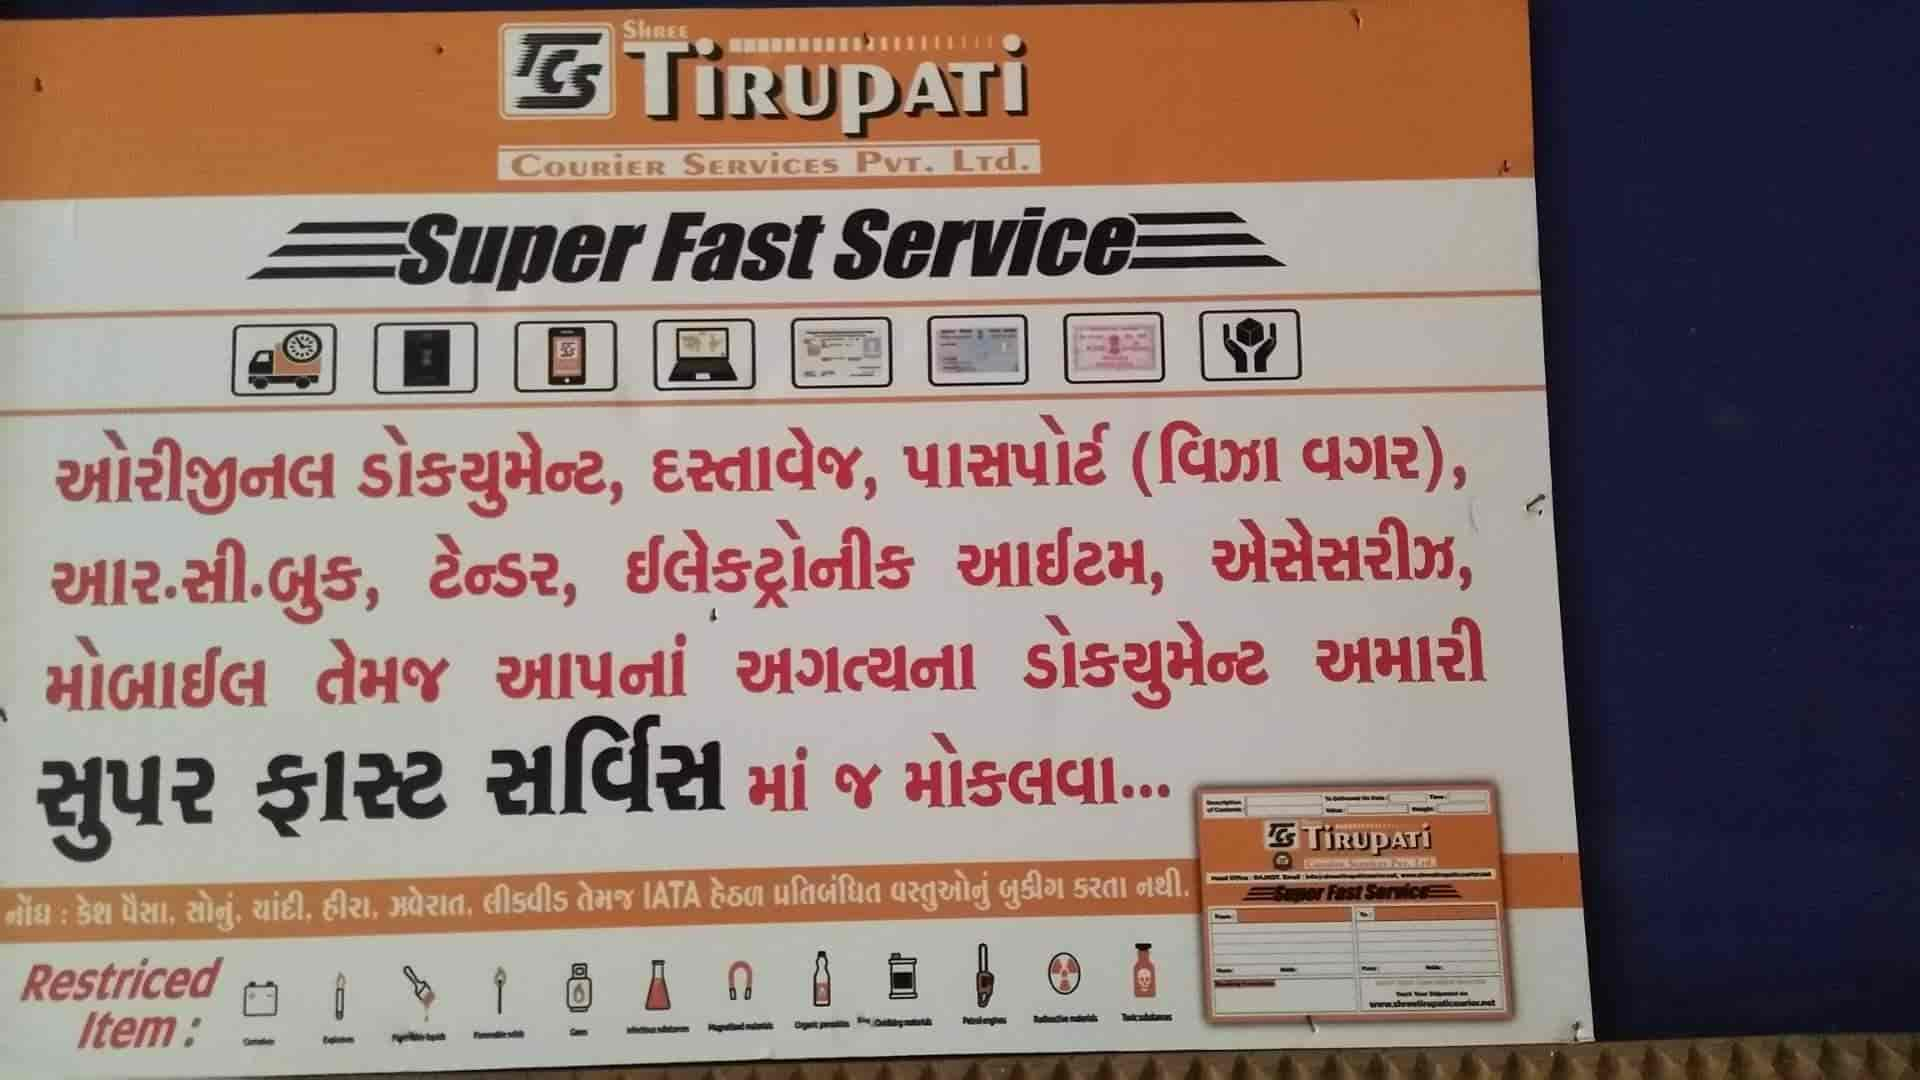 Shree Tirupati Courier Services Pvt Ltd Paldi Courier Services In Ahmedabad Justdial